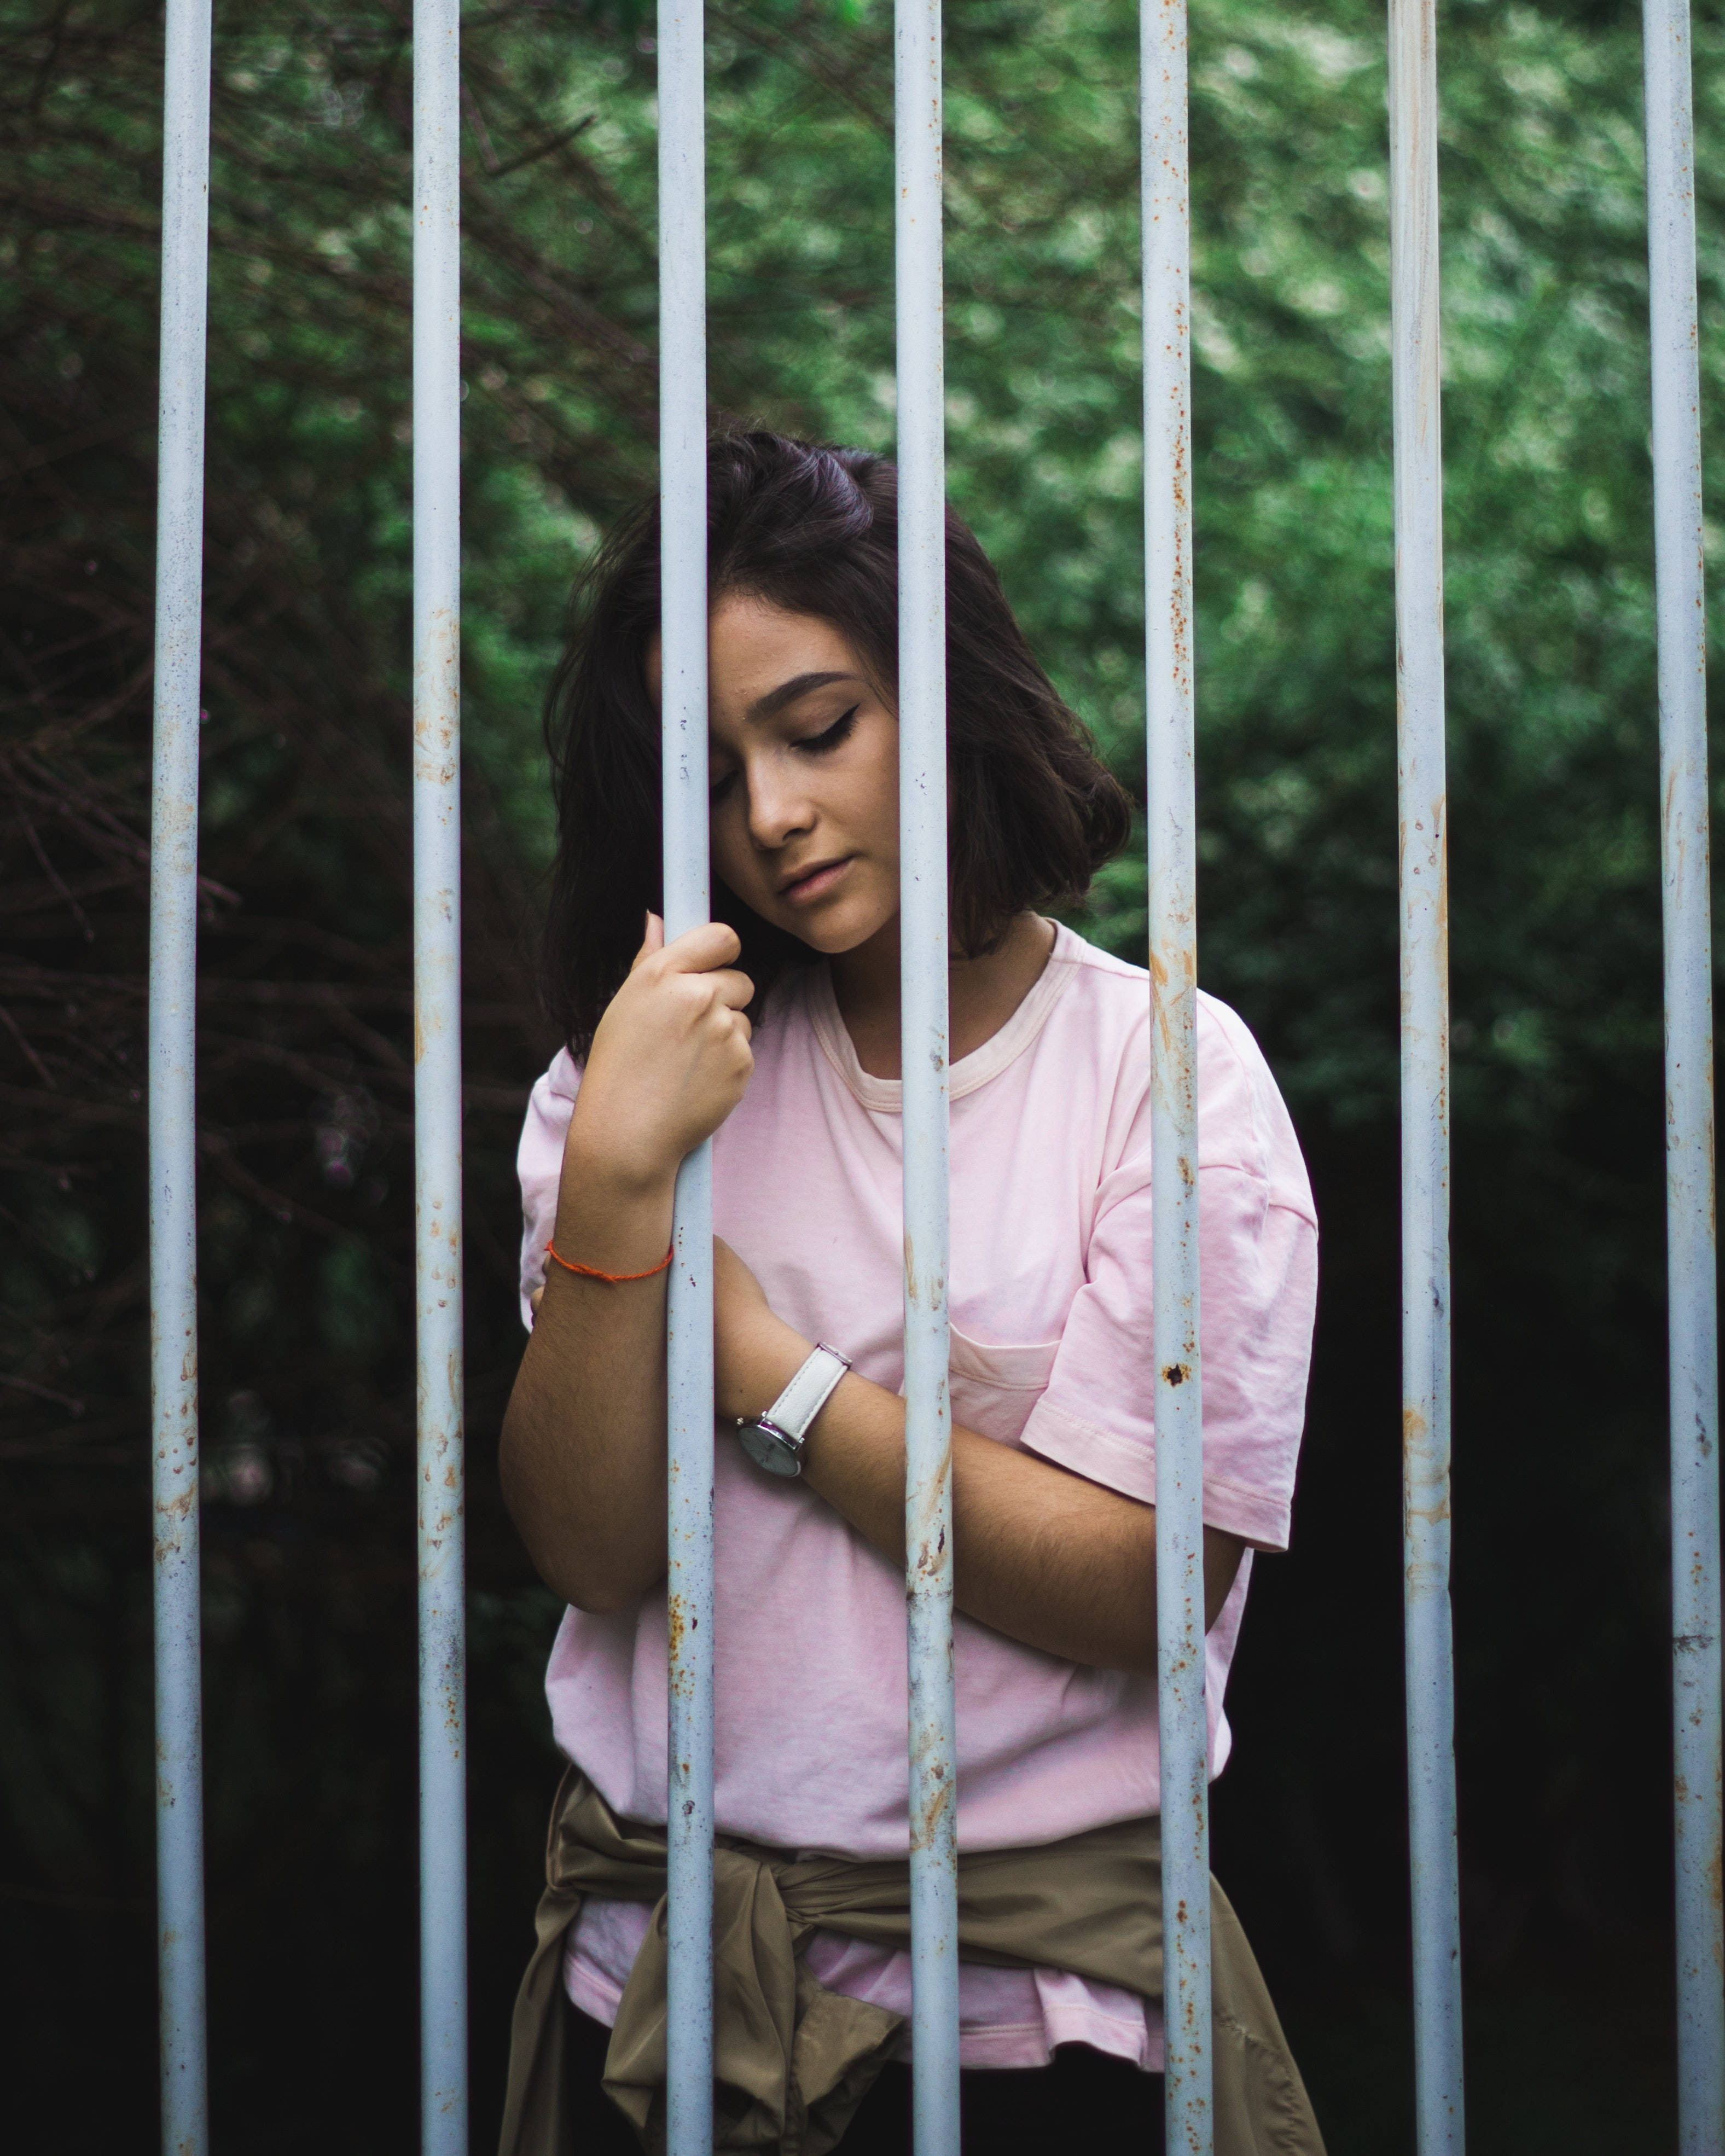 Woman wearing pink crew-neck t-shirt standing and leaning behind white bars photo